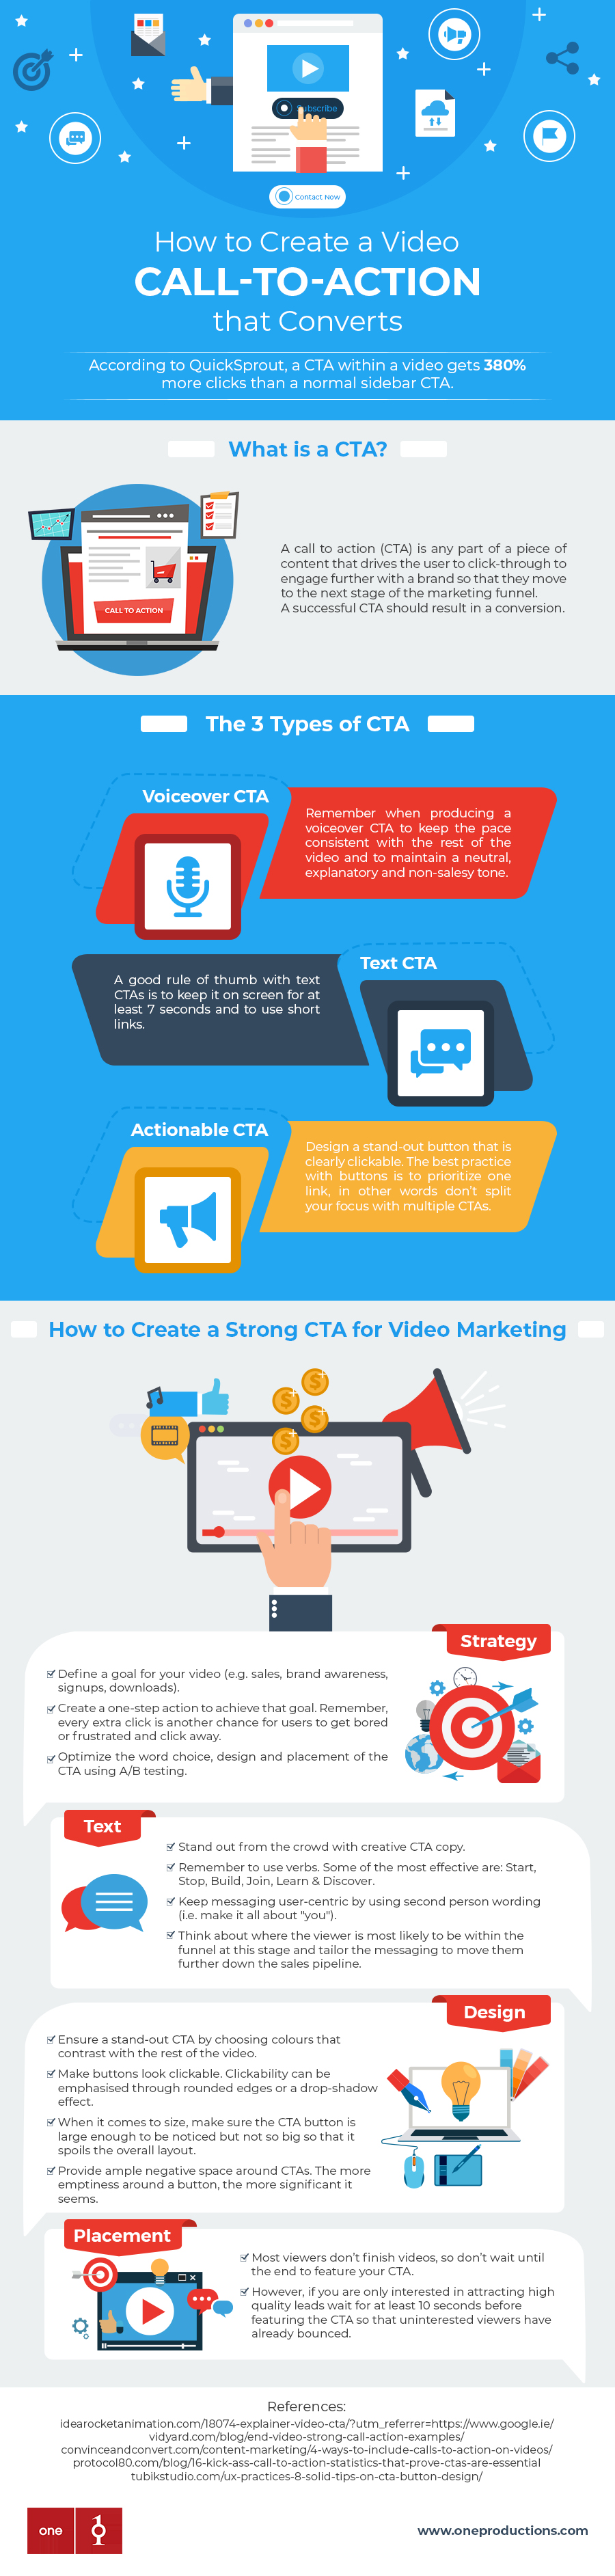 Video CTA video content agency